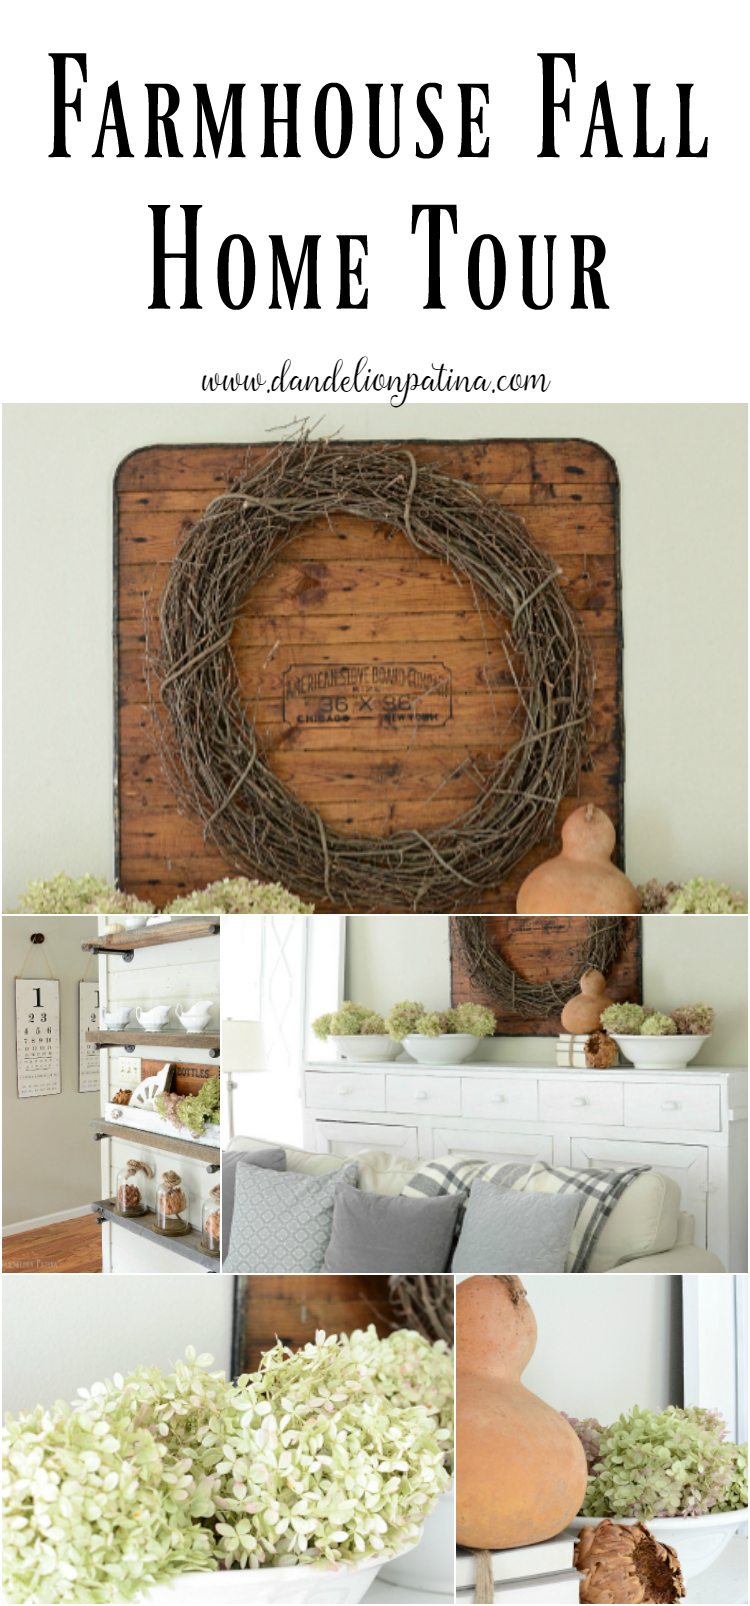 Farmhouse Fall Home Tour with natural elements and textures